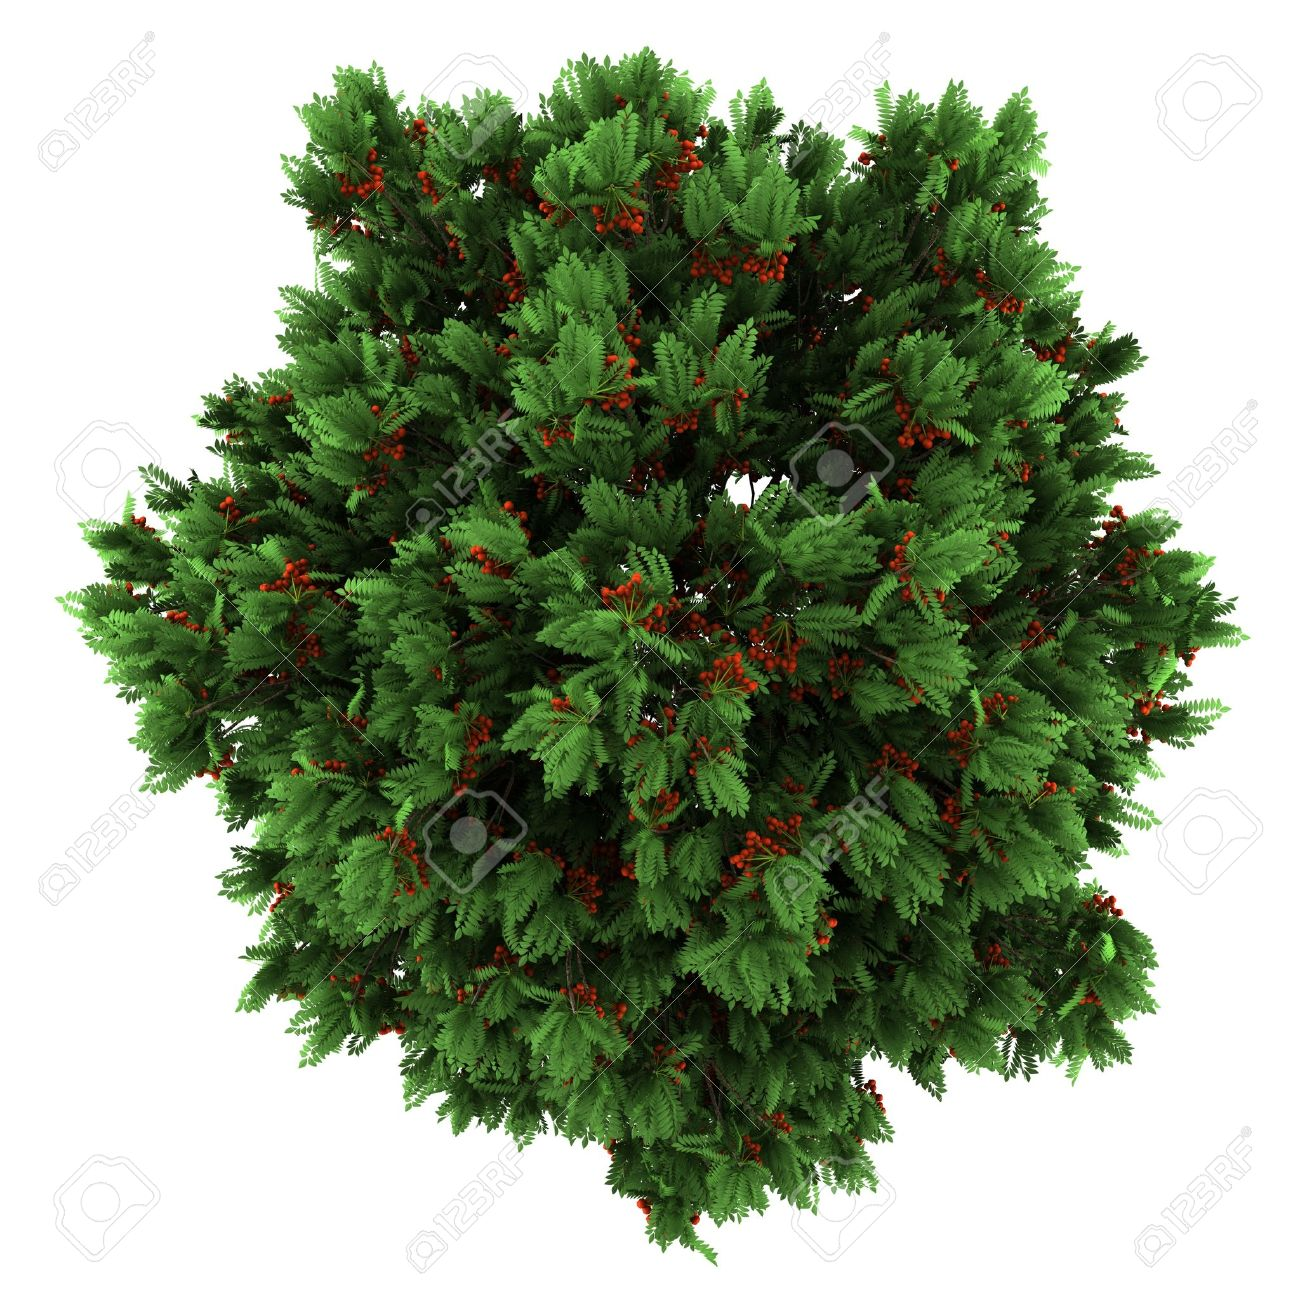 Top View Of European Rowan Tree Isolated On White Background Stock Photo